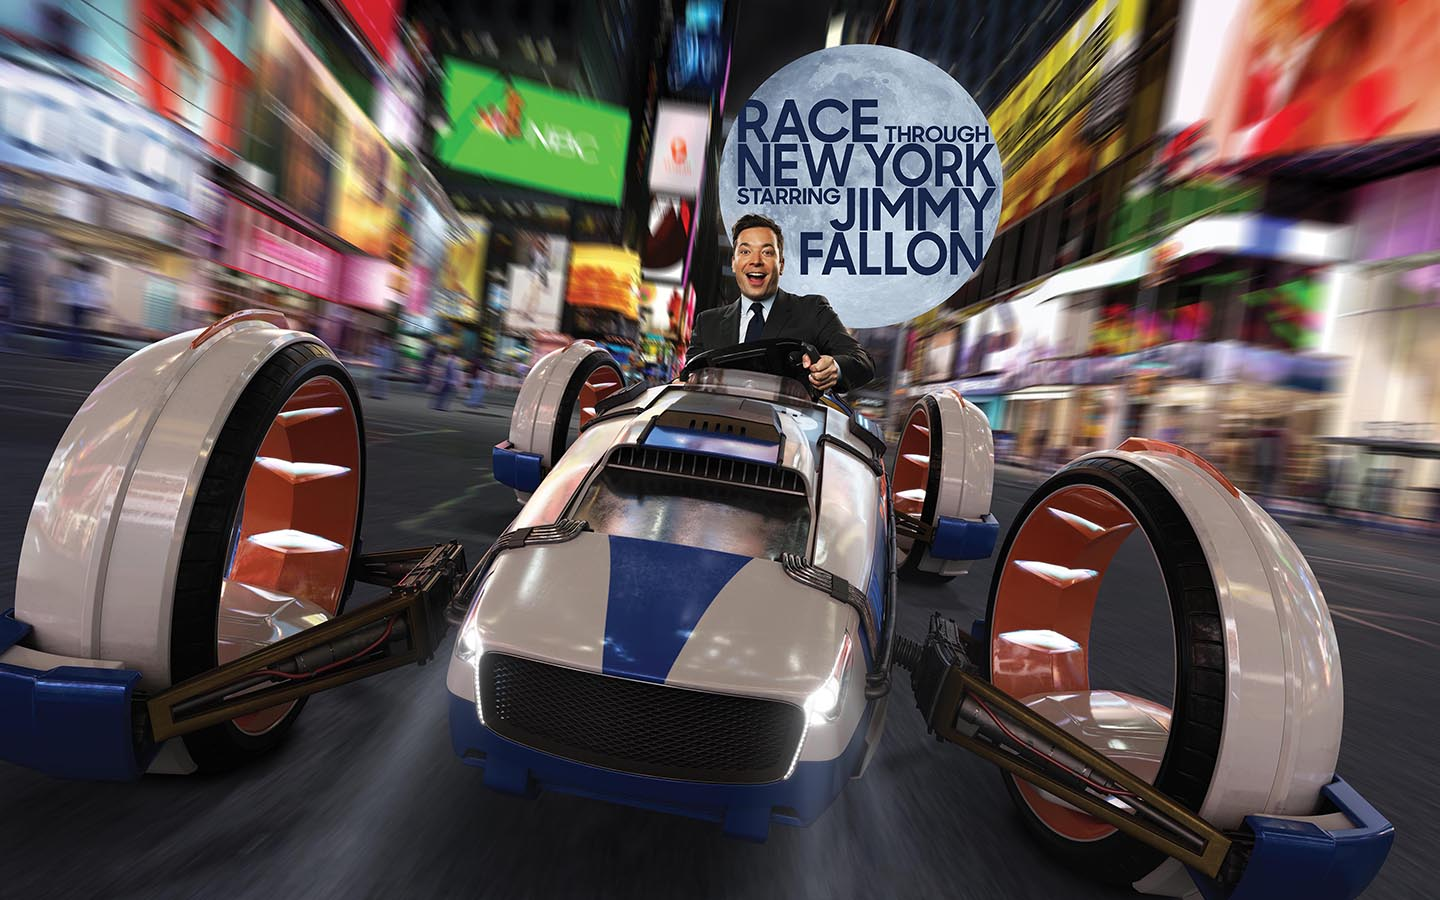 Step into 30 Rock and then it's off to the races with Jimmy Fallon.